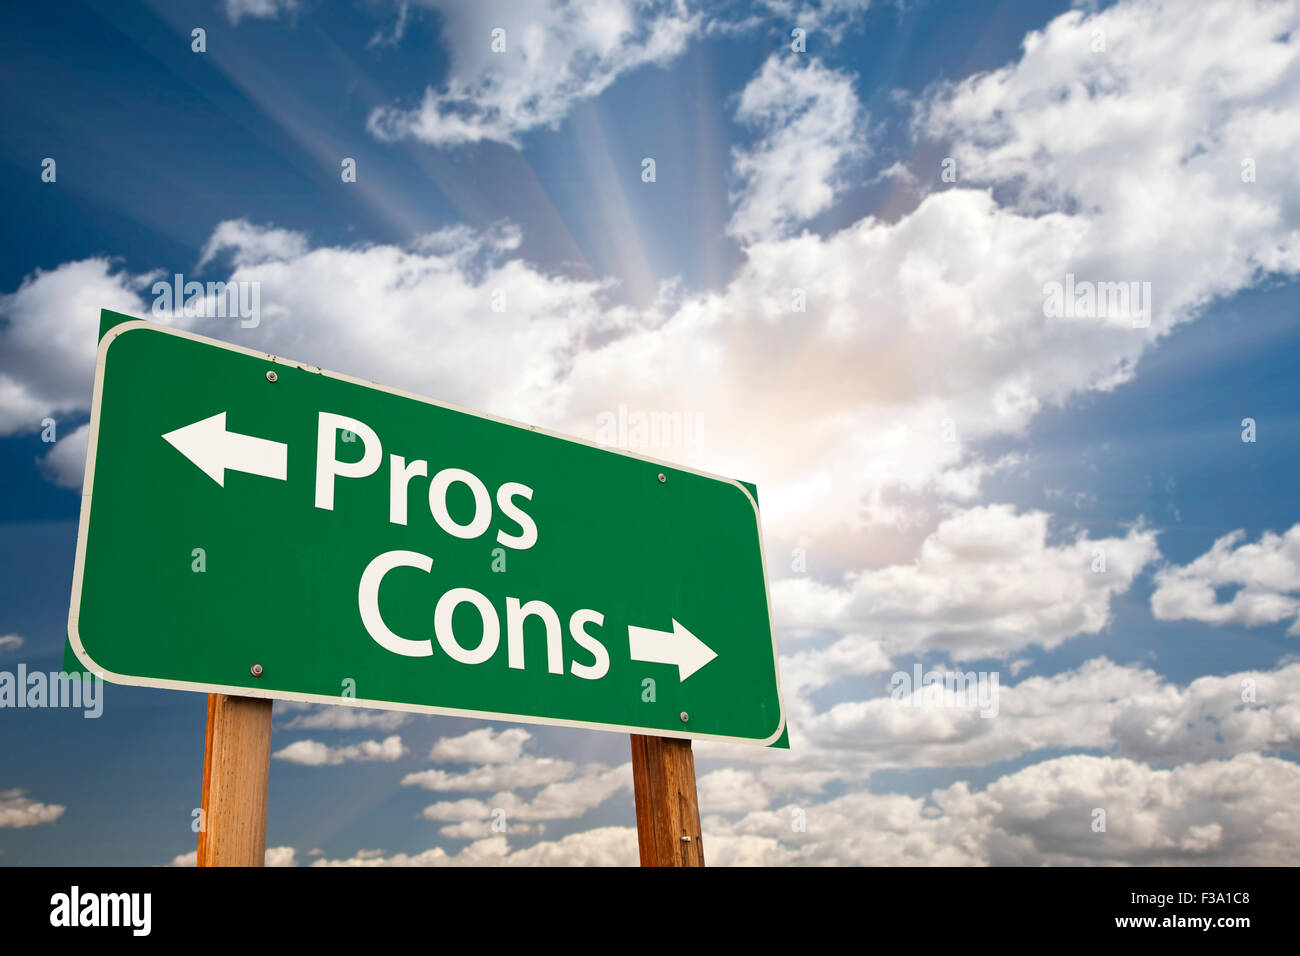 Pros and Cons Green Road Sign With Dramatic Clouds and Sky. - Stock Image